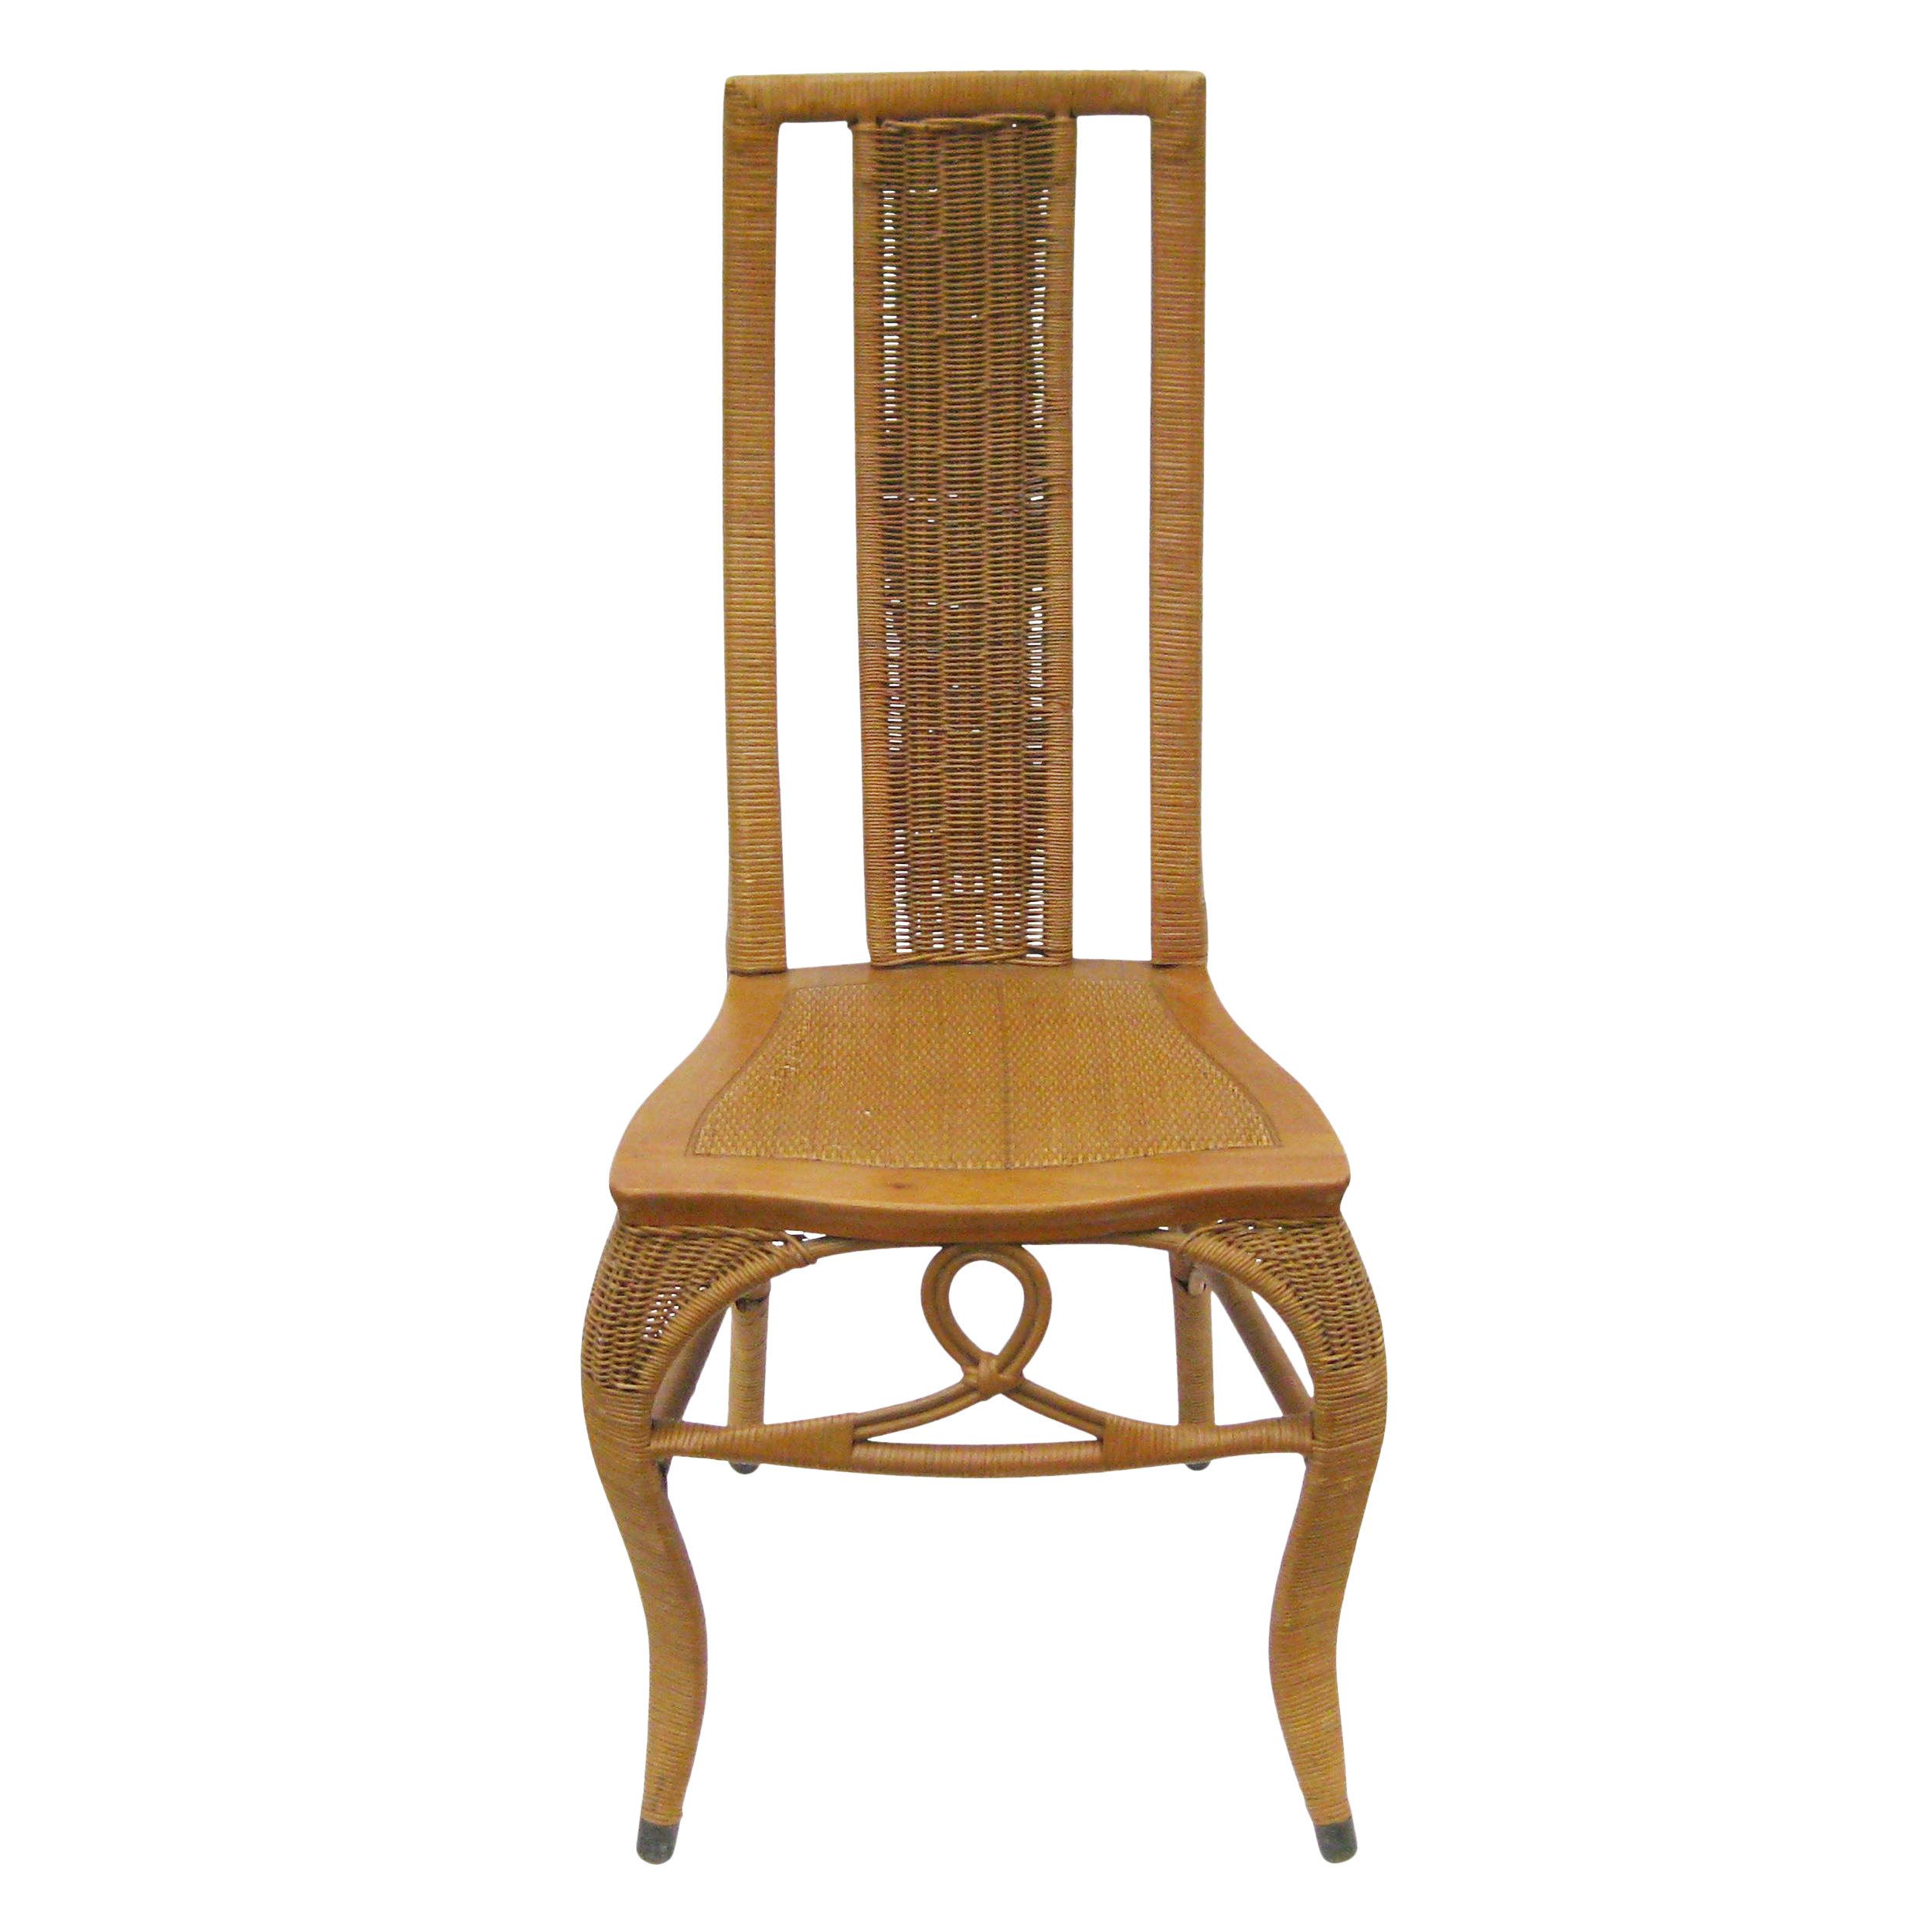 Surprising Vintage Heywood Brothers Wakefield Company Wood And Cane Wicker Rattan Dining Chair Ocoug Best Dining Table And Chair Ideas Images Ocougorg